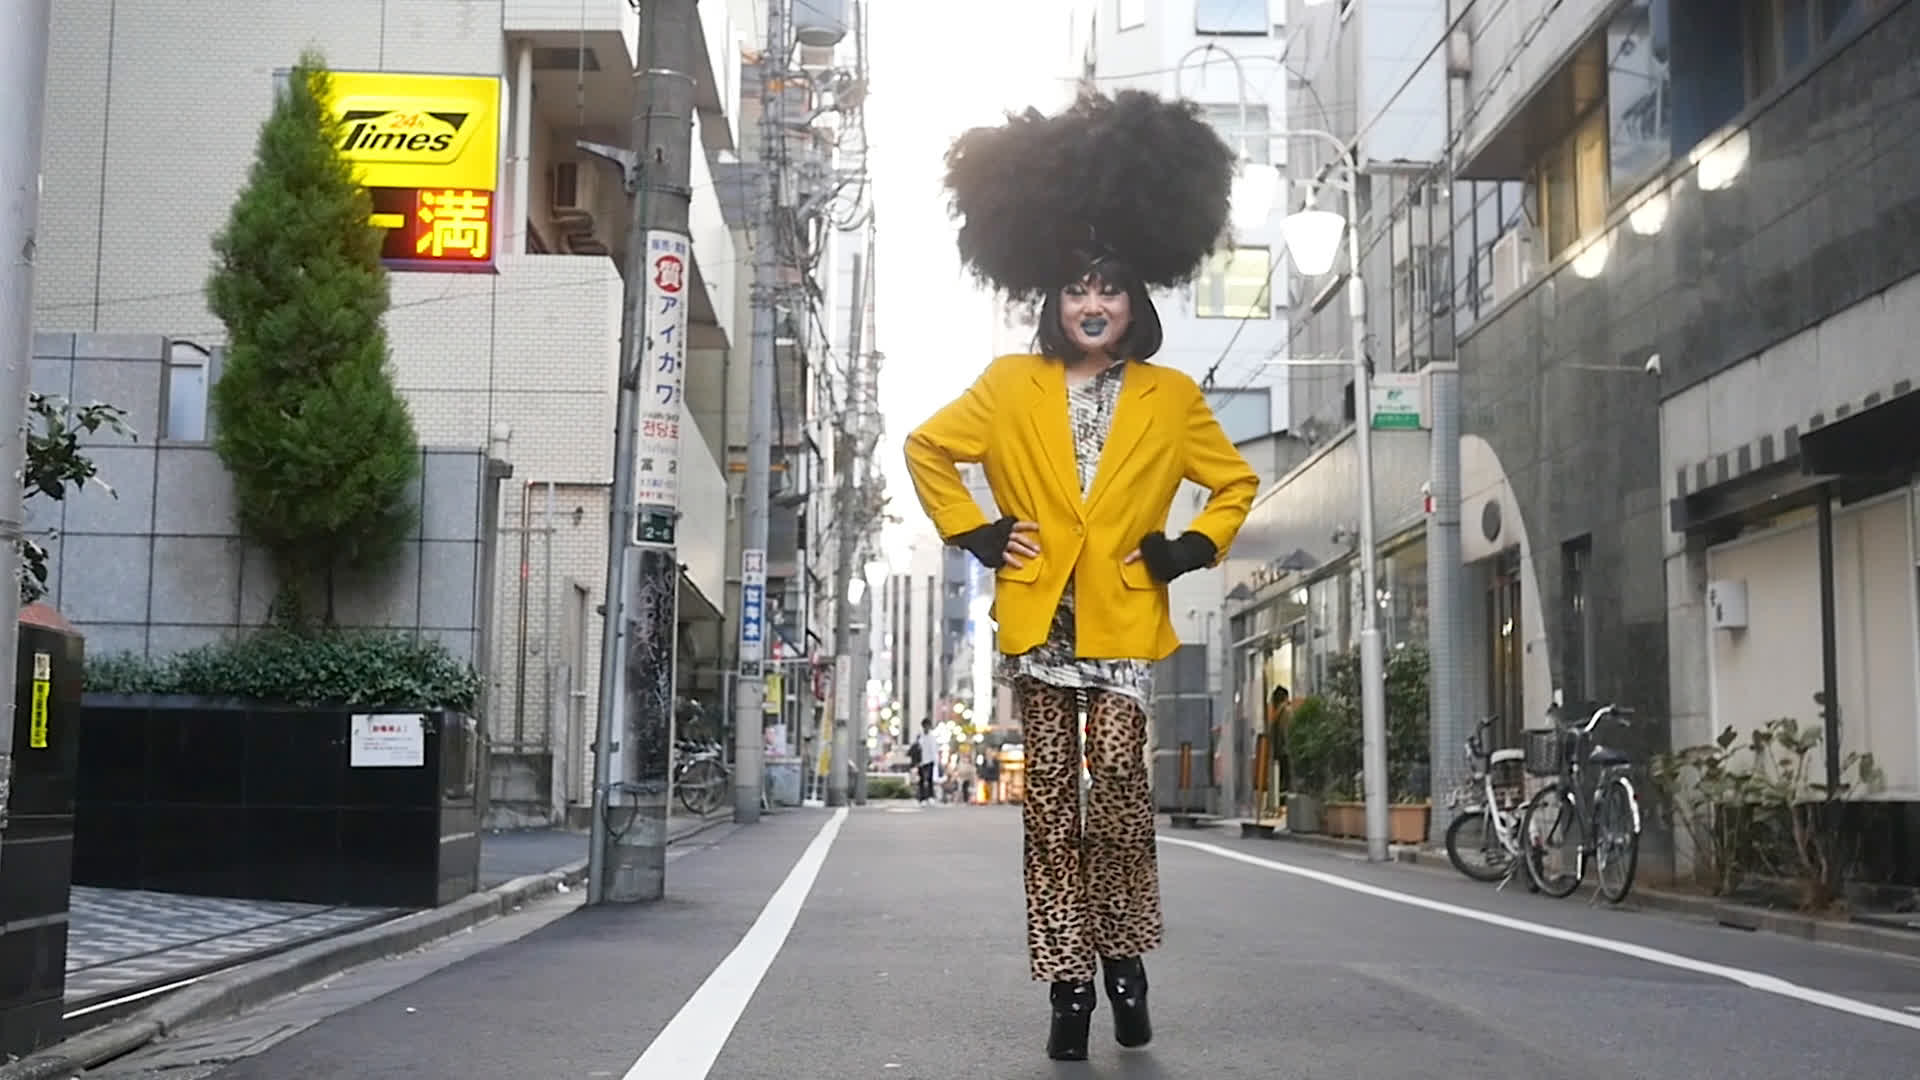 A person in yellow blazer on the streets